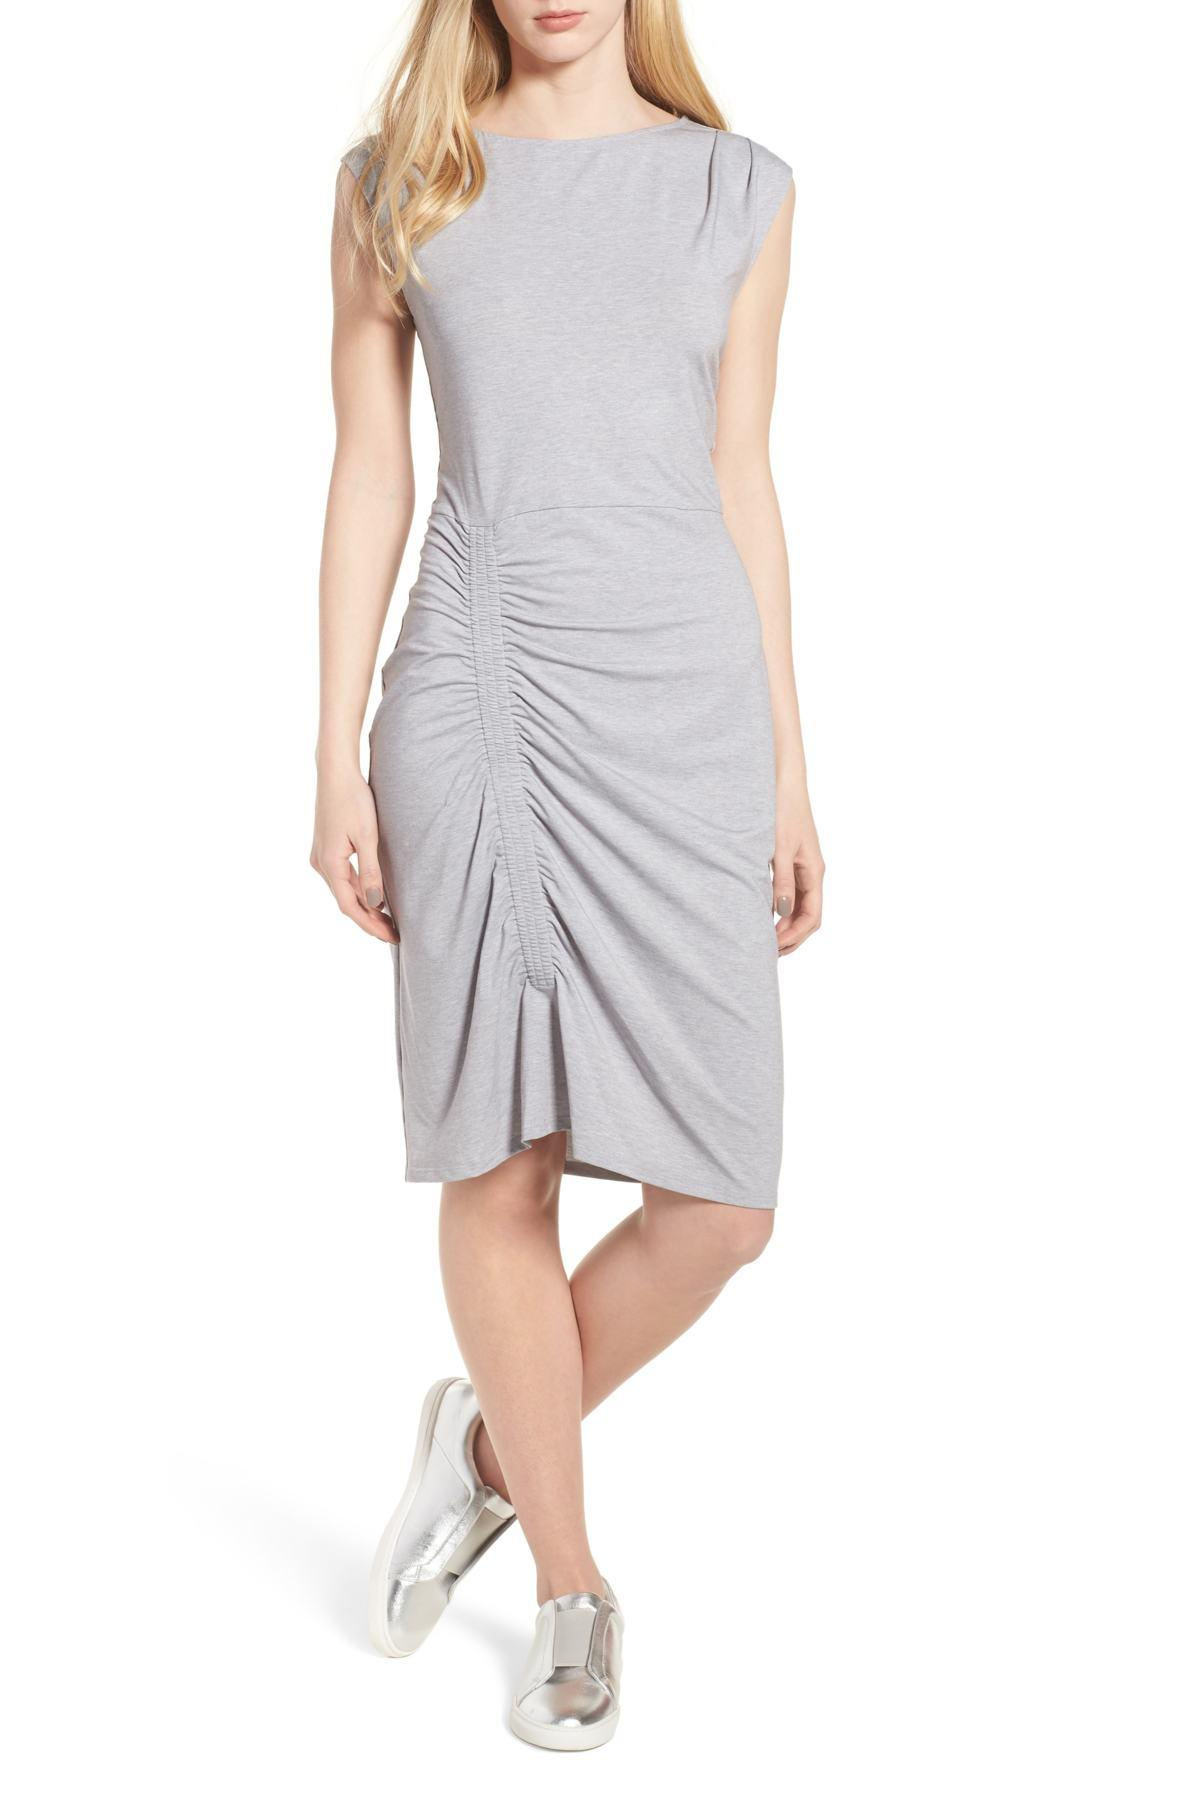 Lyst - Trouvé Ruched Knit Dress in Gray ee1fce1f8